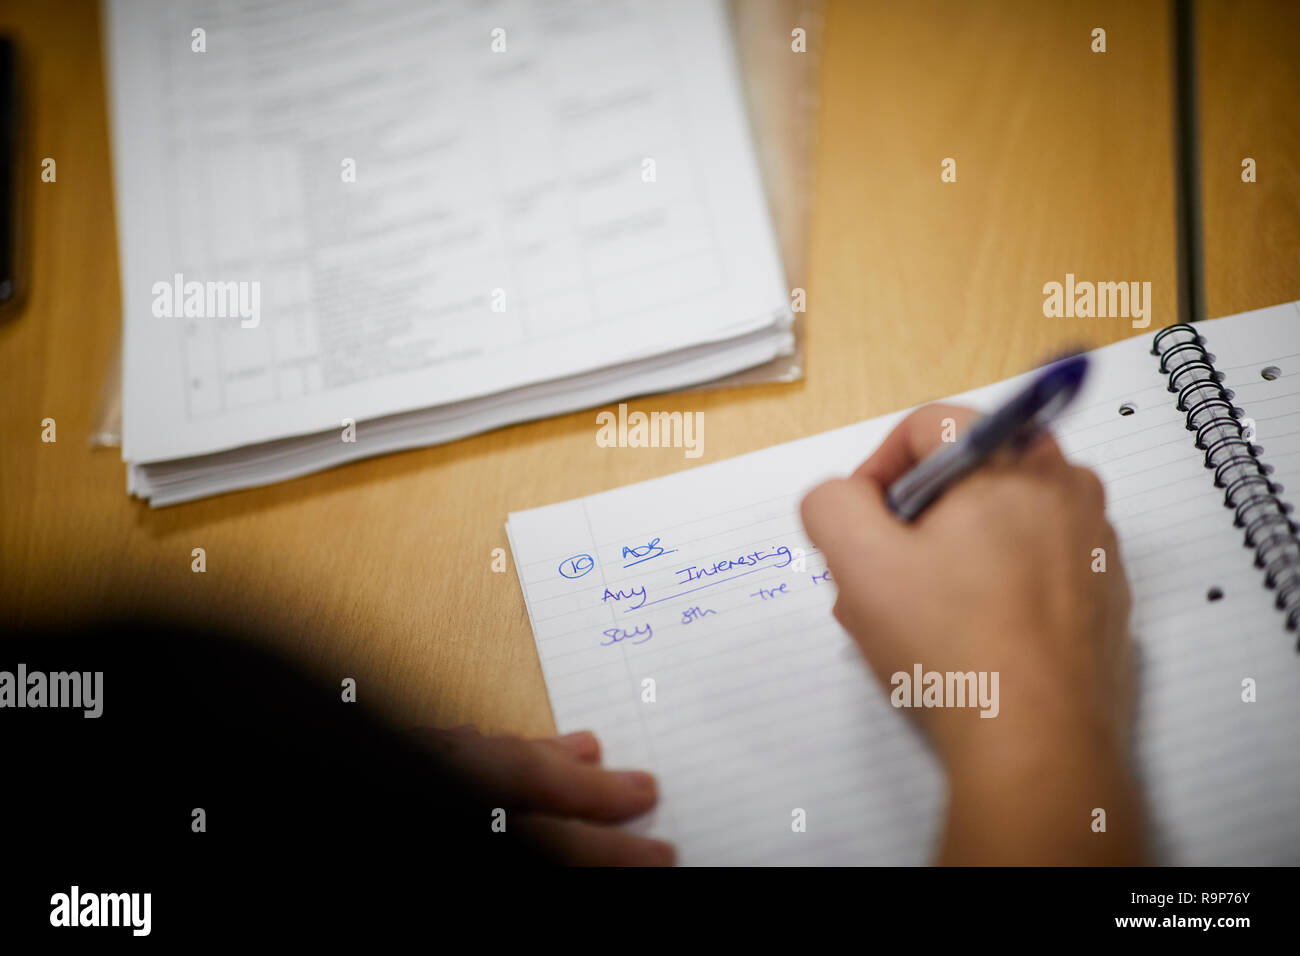 Writing notes in a school note book line paper homework at a desk - Stock Image